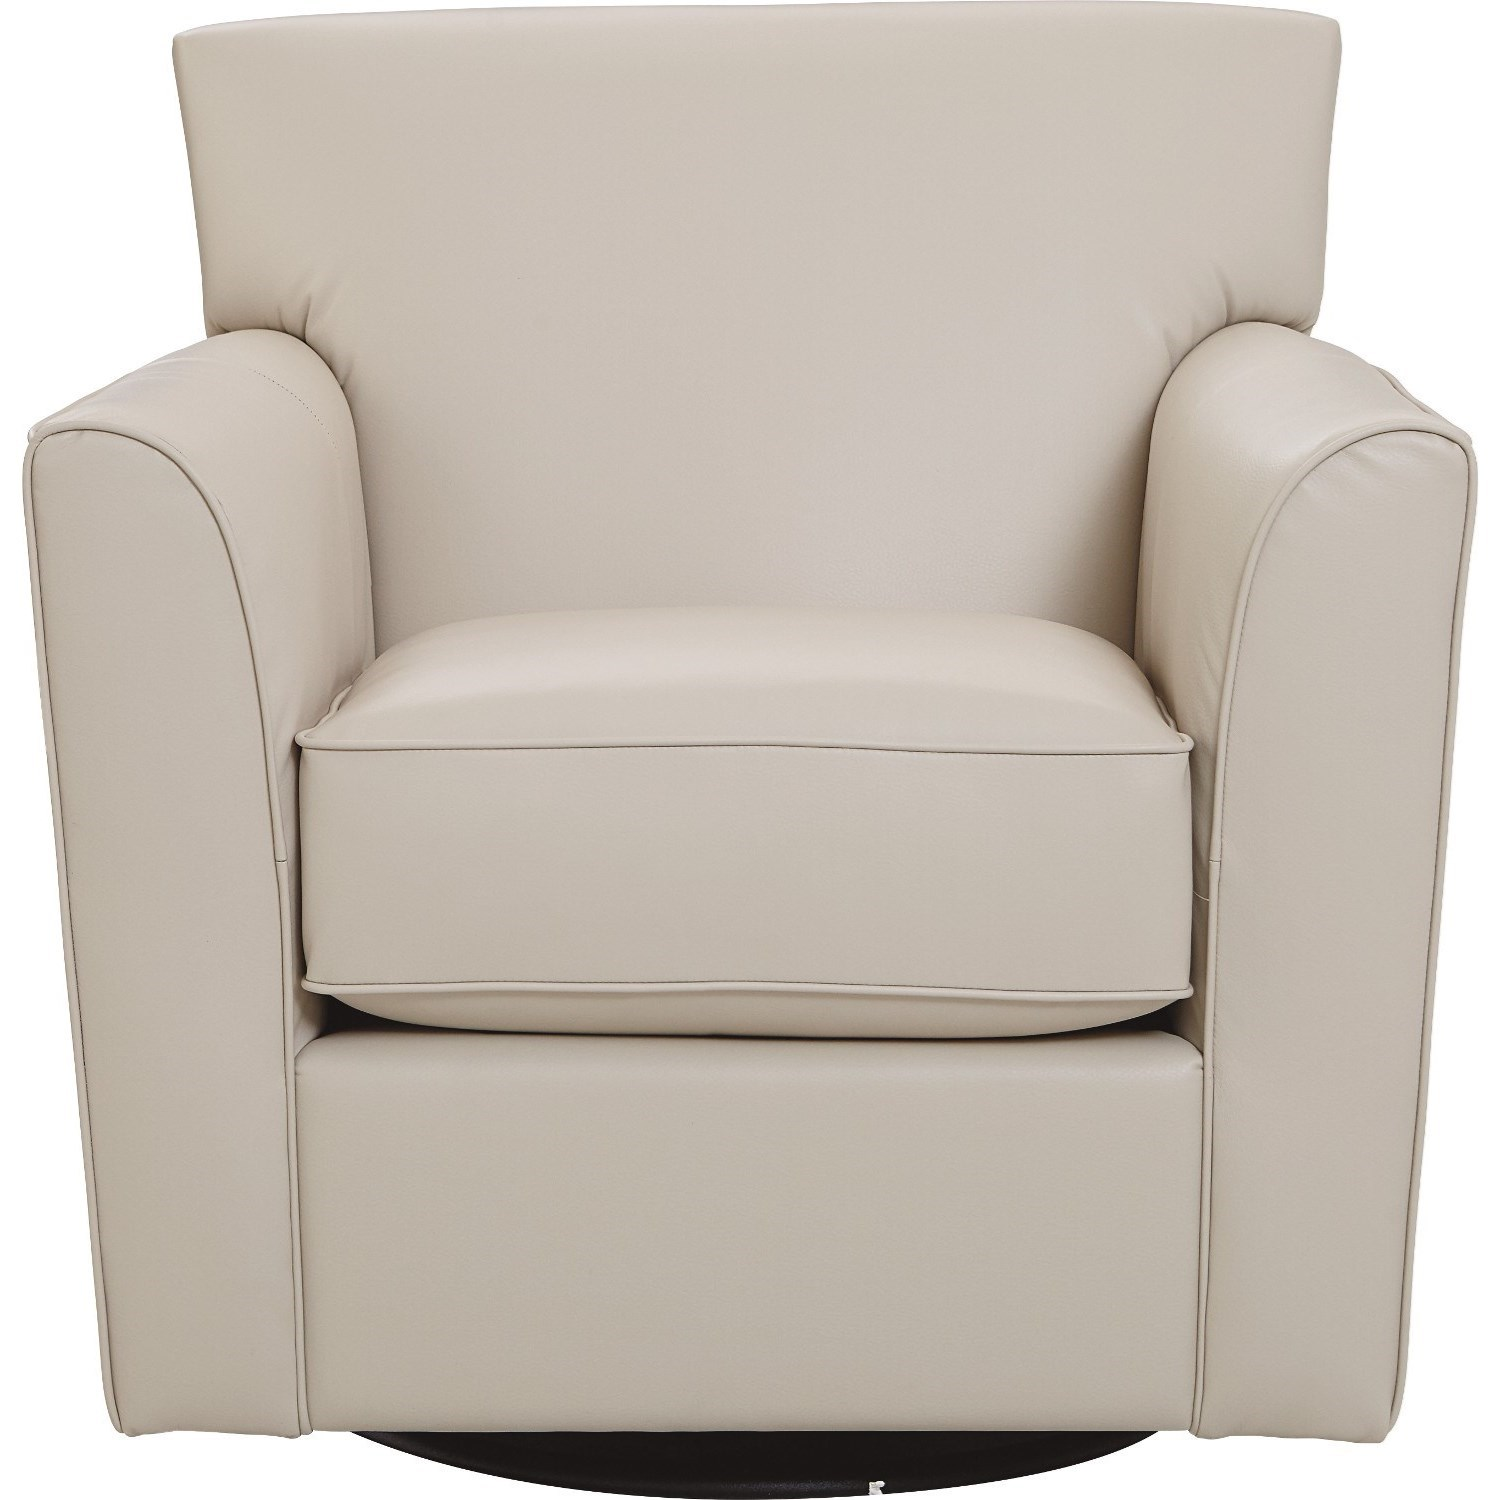 Chairs Allegra Premier Swivel Glider by La-Z-Boy at Jordan's Home Furnishings